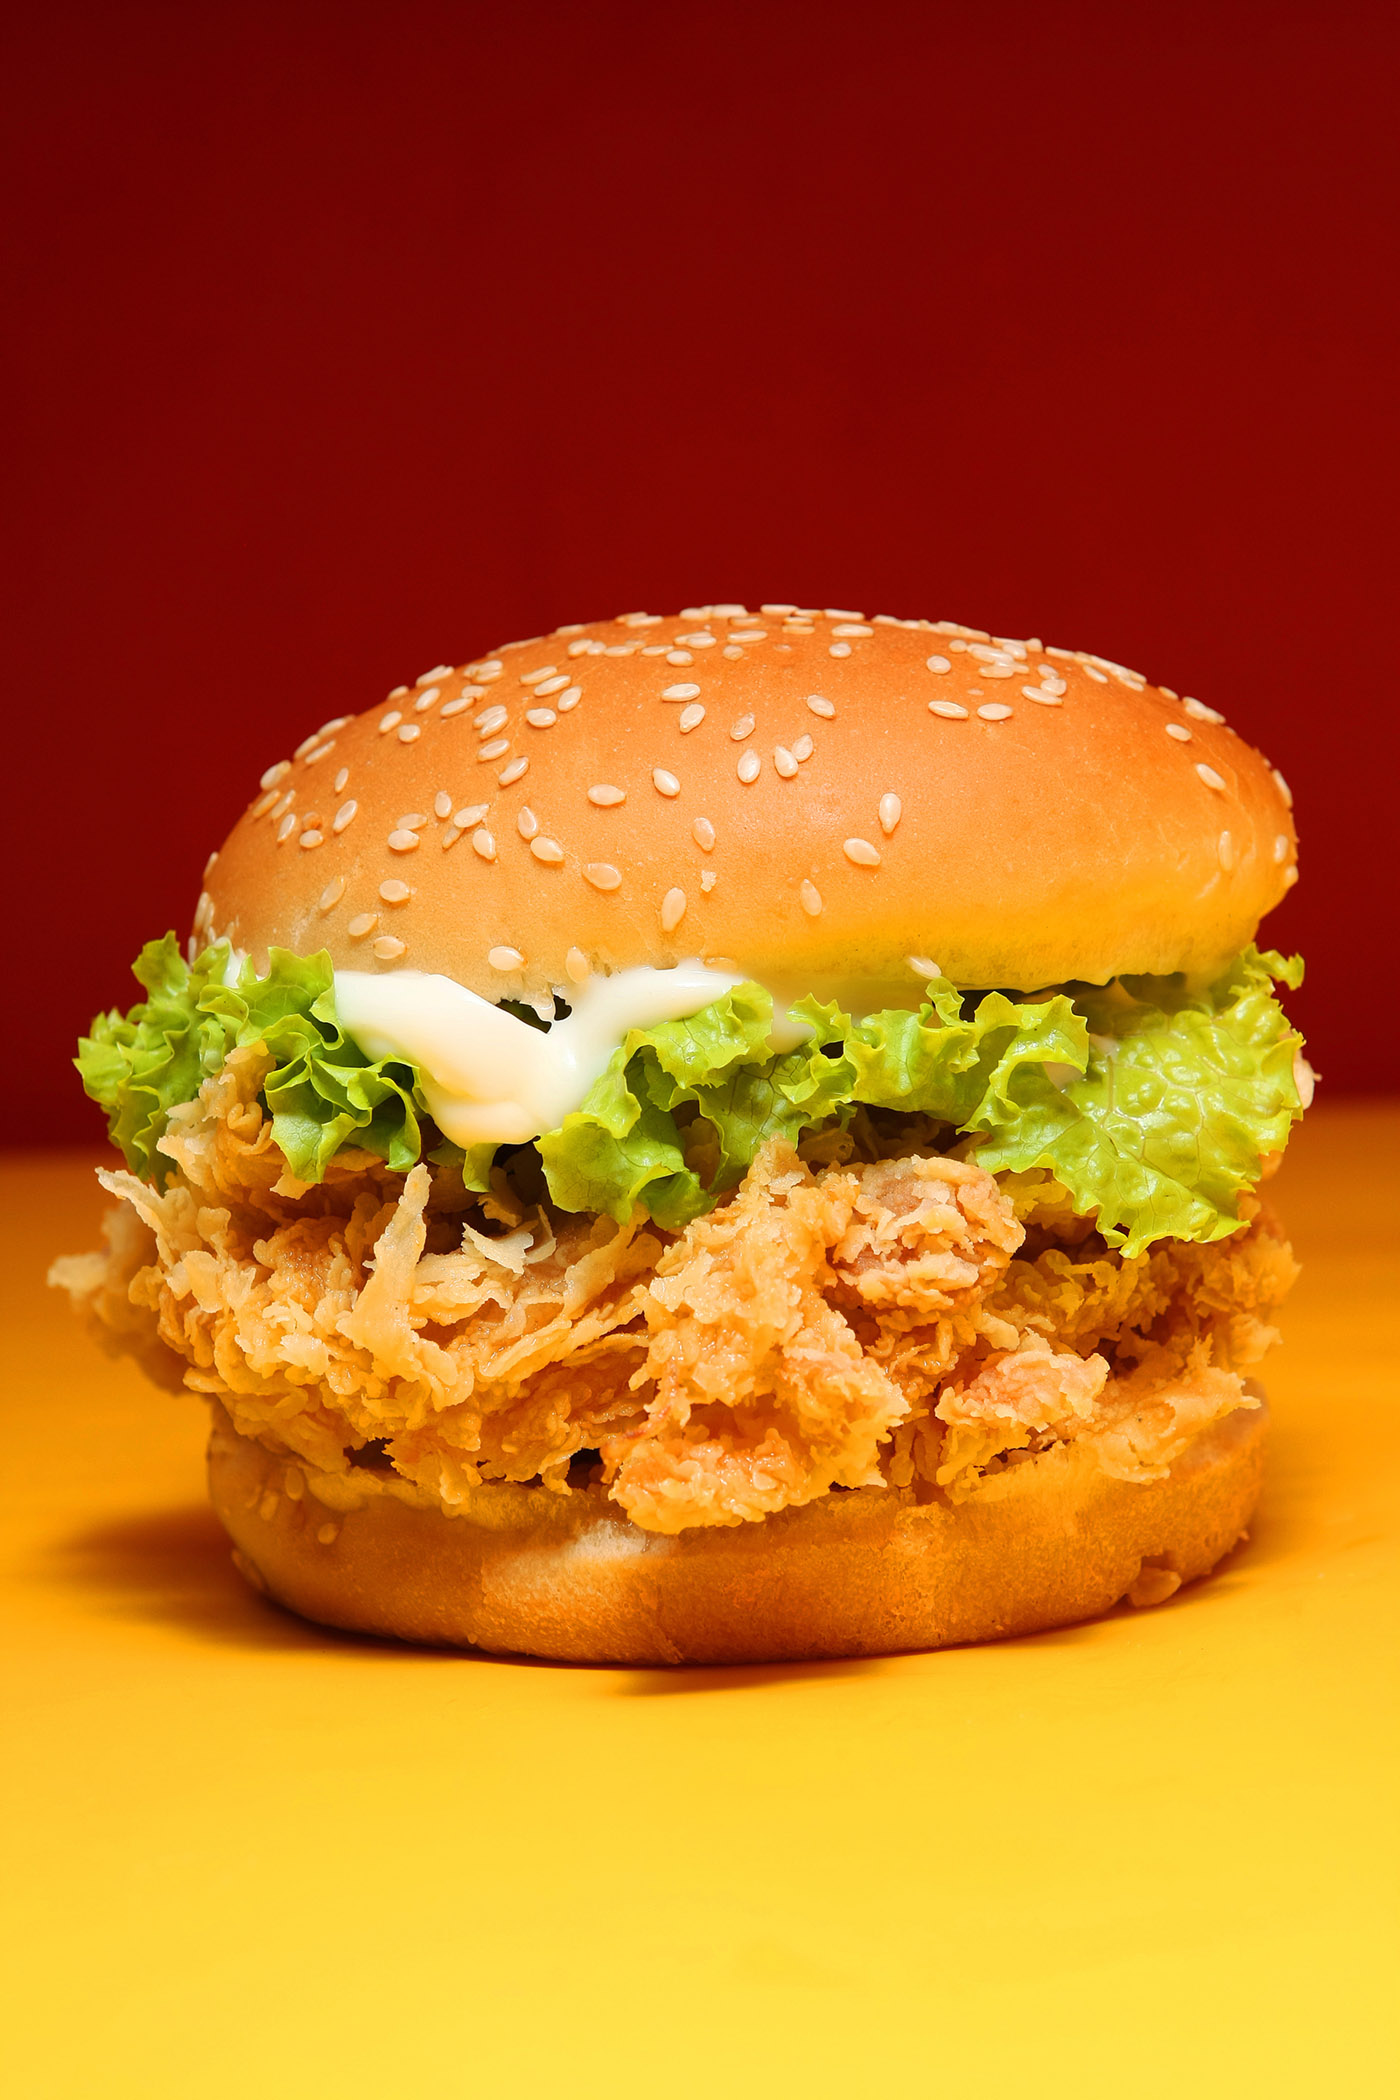 HD hamburgers and fried chicken picture 13779